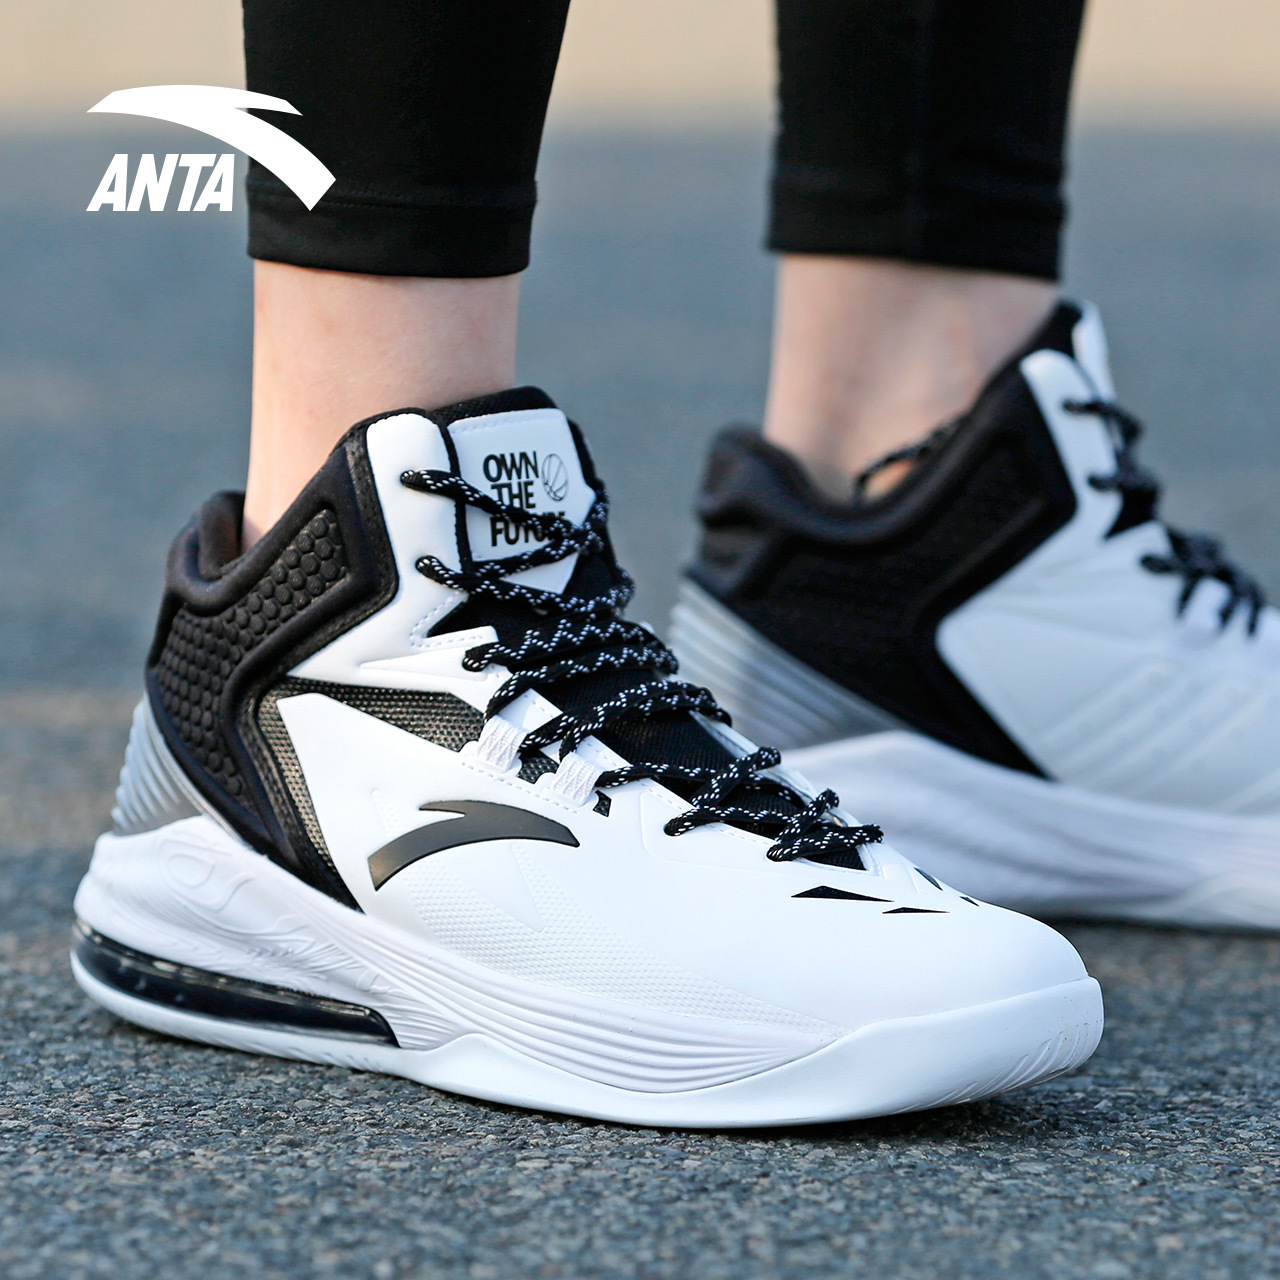 Anta Basketball Shoes Men S Shoes 2018 Winter New Air Cushion Shoes